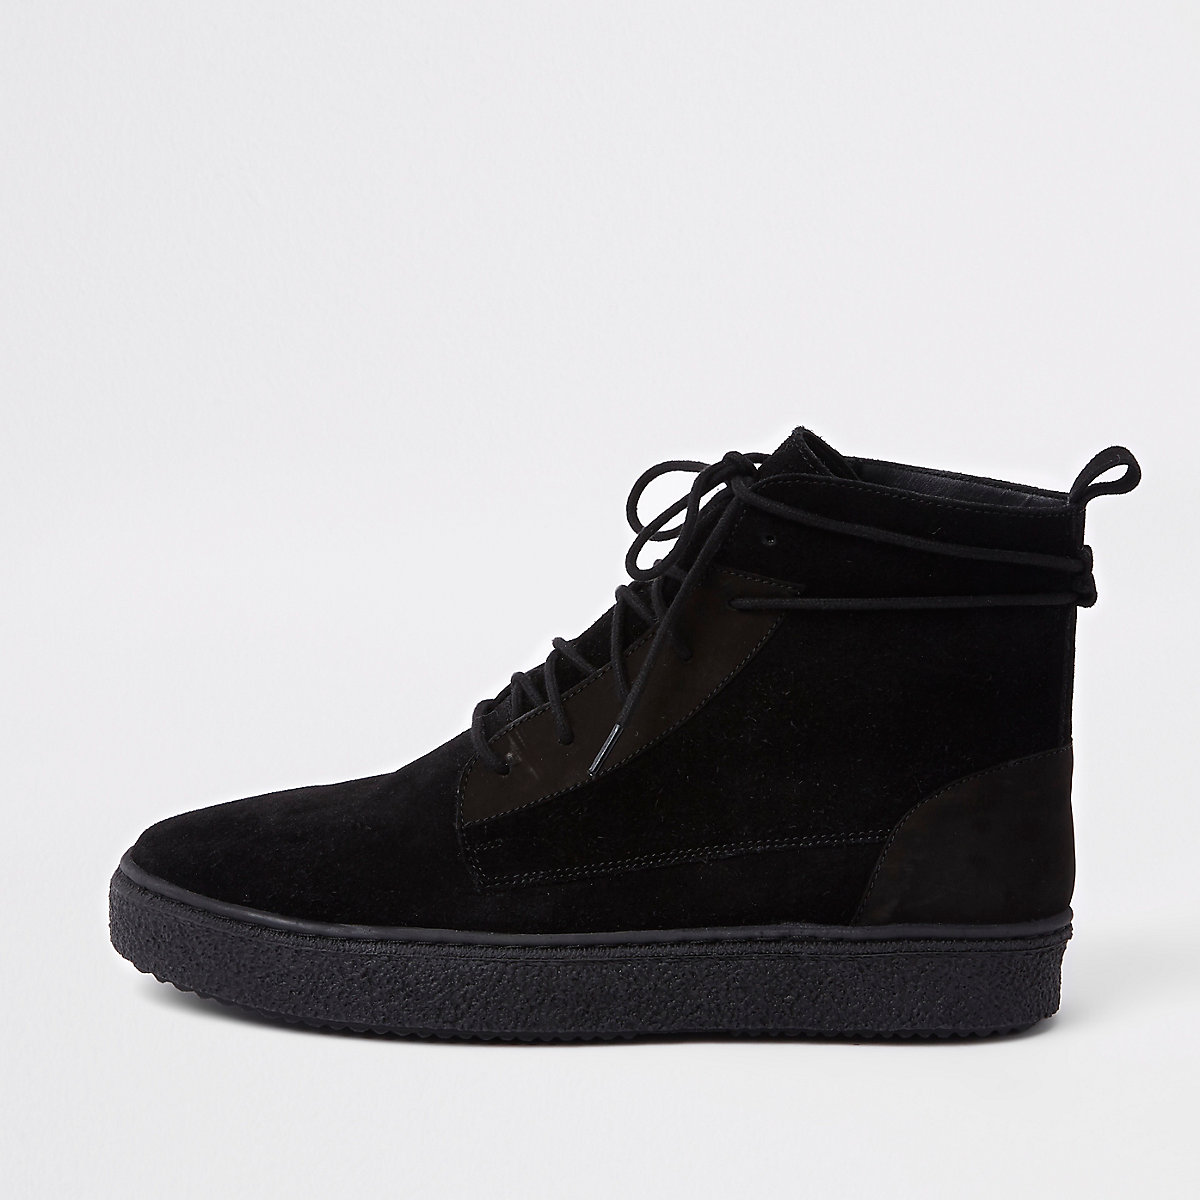 Black suede wrap around desert boots